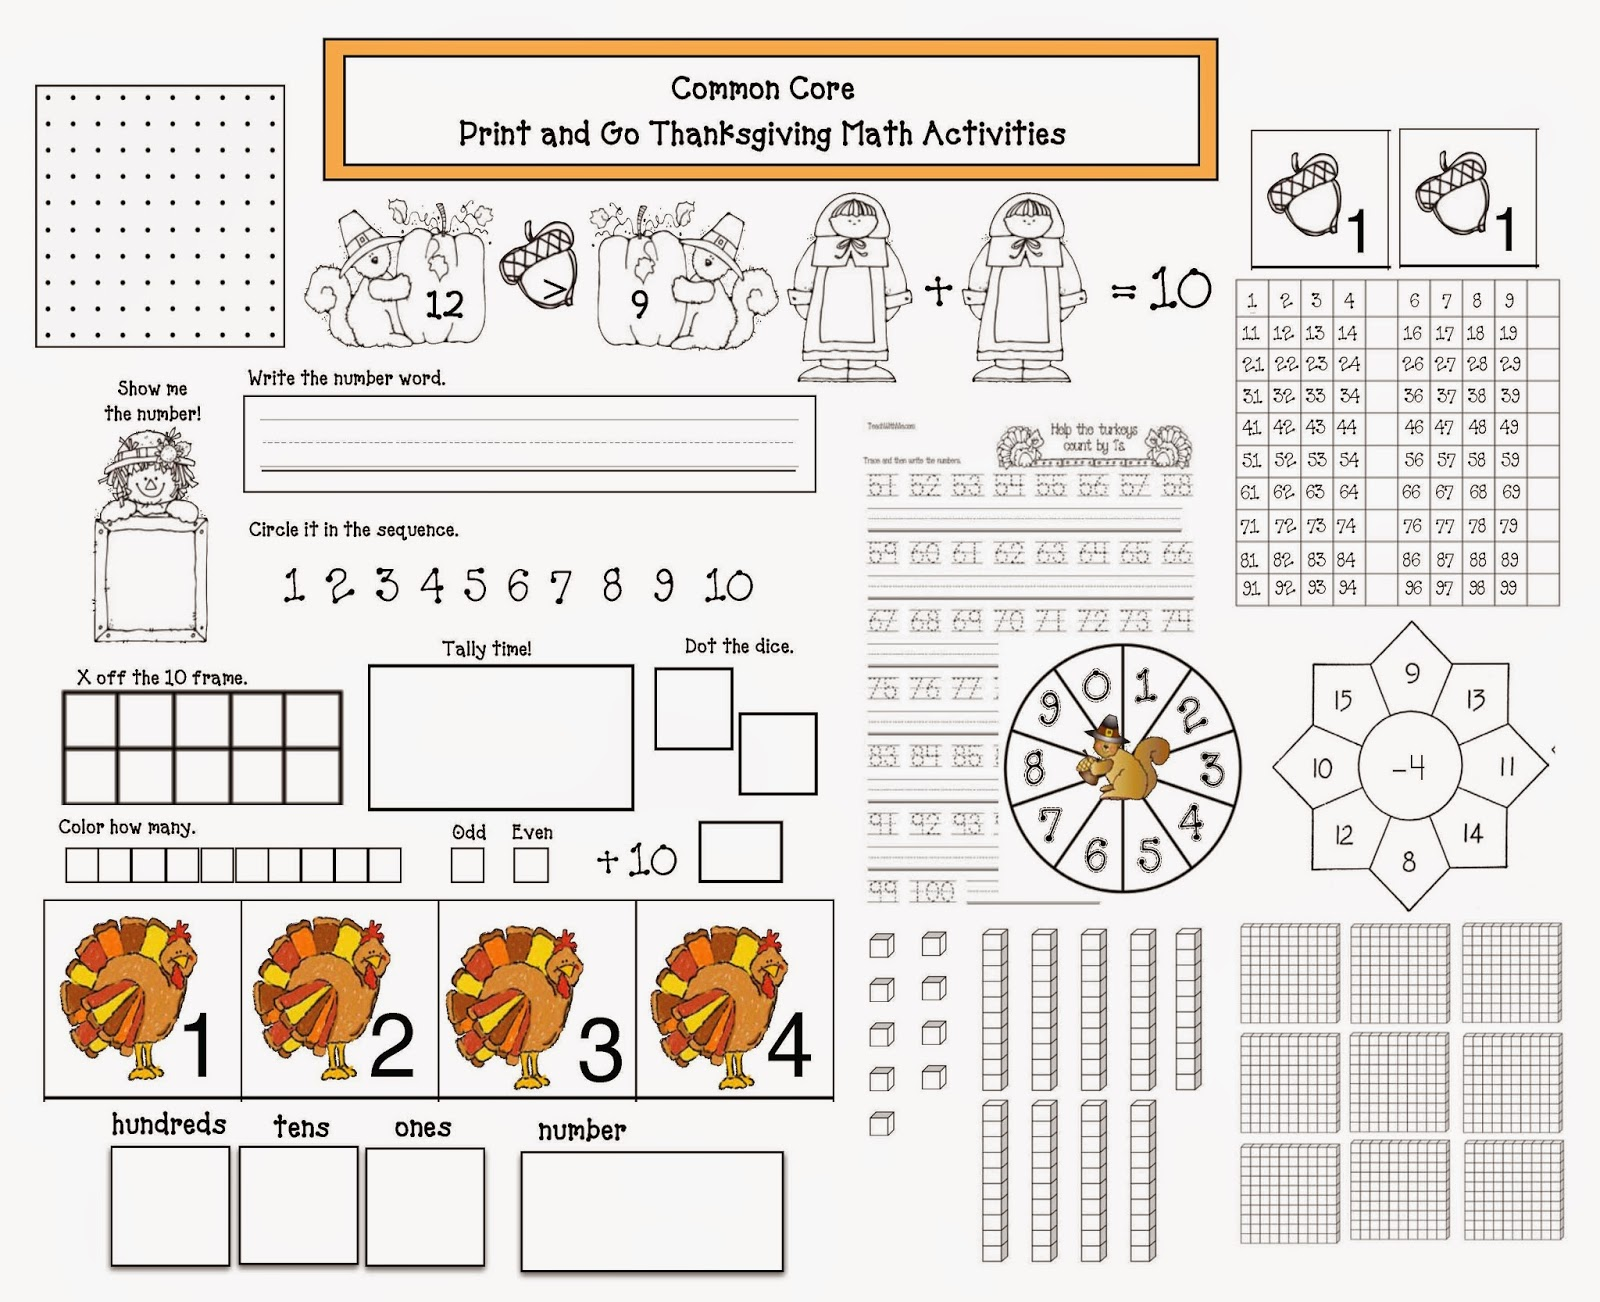 Classroom Freebies: Common Core Thanksgiving Math Packet